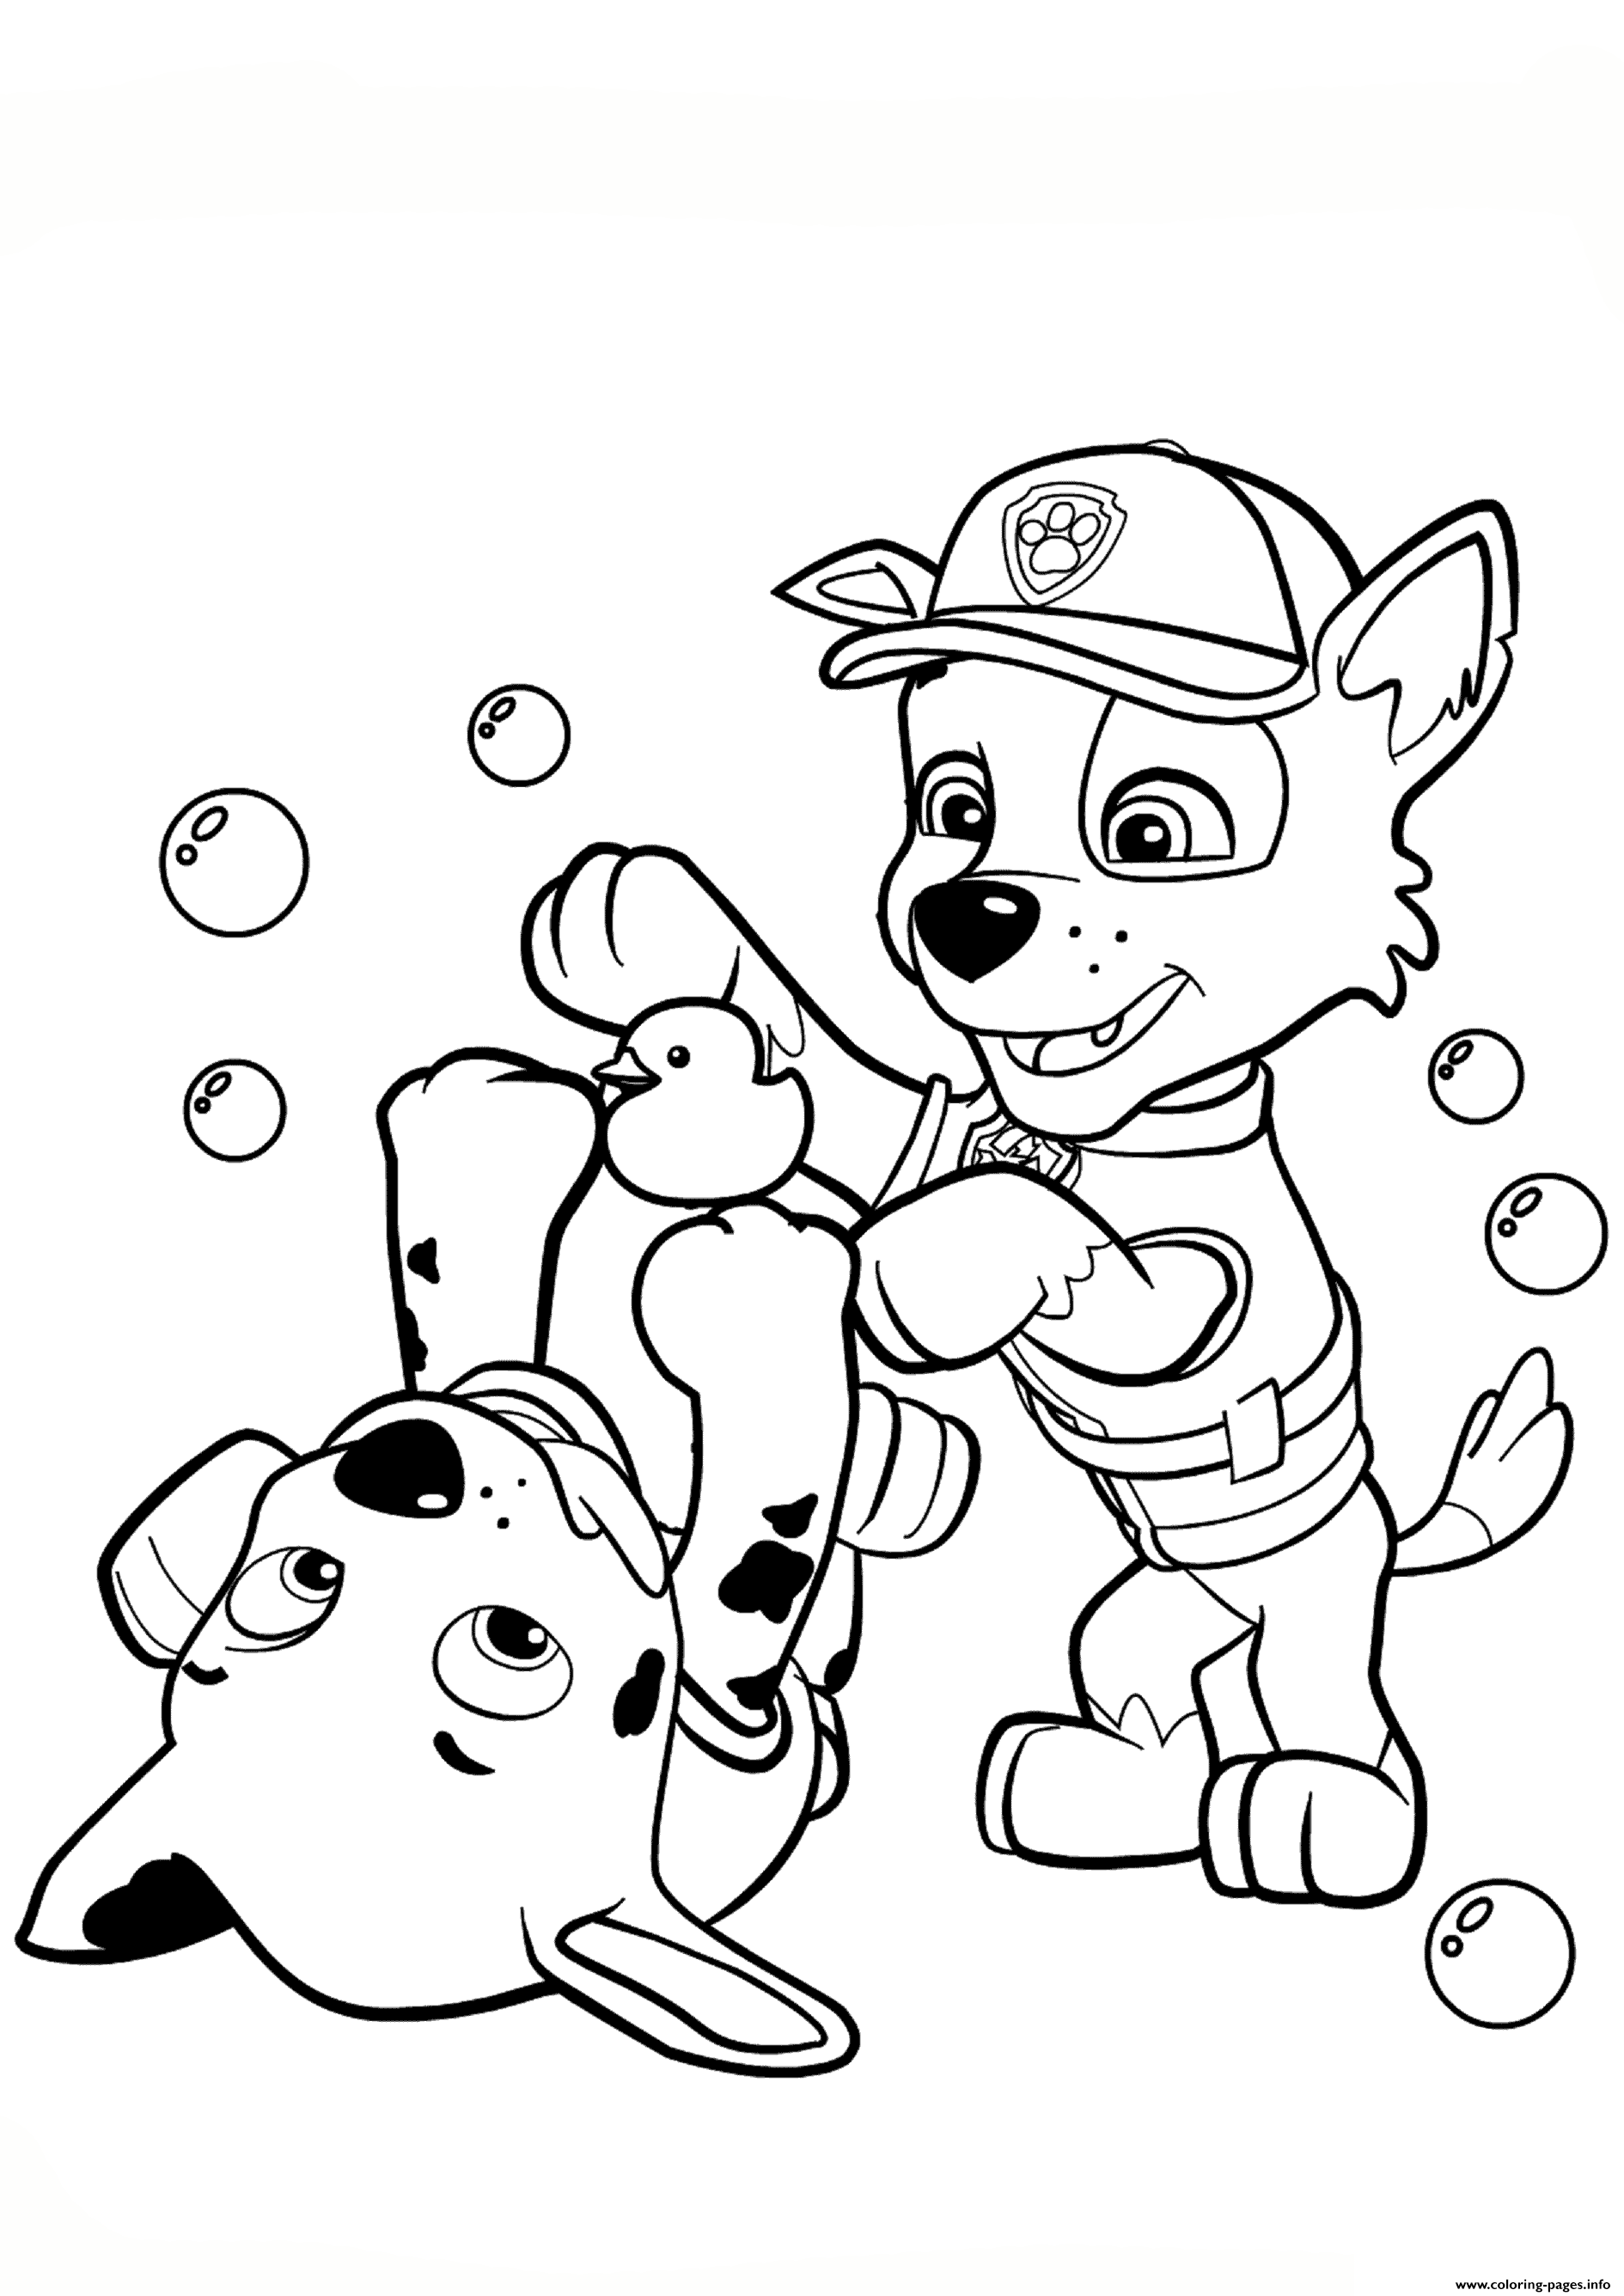 Print Paw Patrol Rocky And Marshall Coloring Pages Paw Patrol Coloring Paw Patrol Coloring Pages Paw Patrol Printables